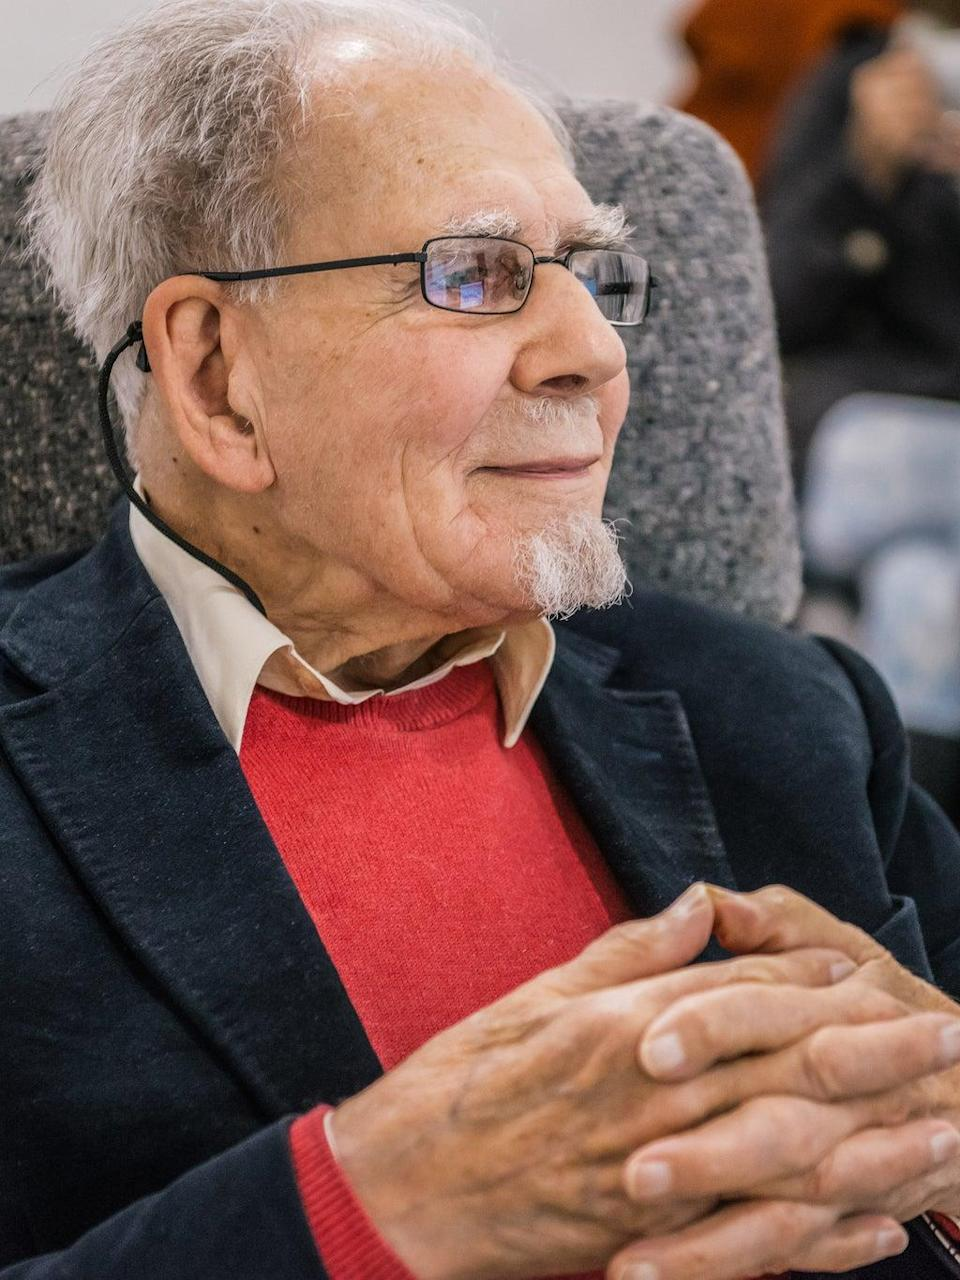 In honour of Stephen Wilkinson's 100th birthday in 2019, the BBC Singers broadcast a special recital including a broadcast premiere of Dover Beach (Andrew Wilkinson Photography)